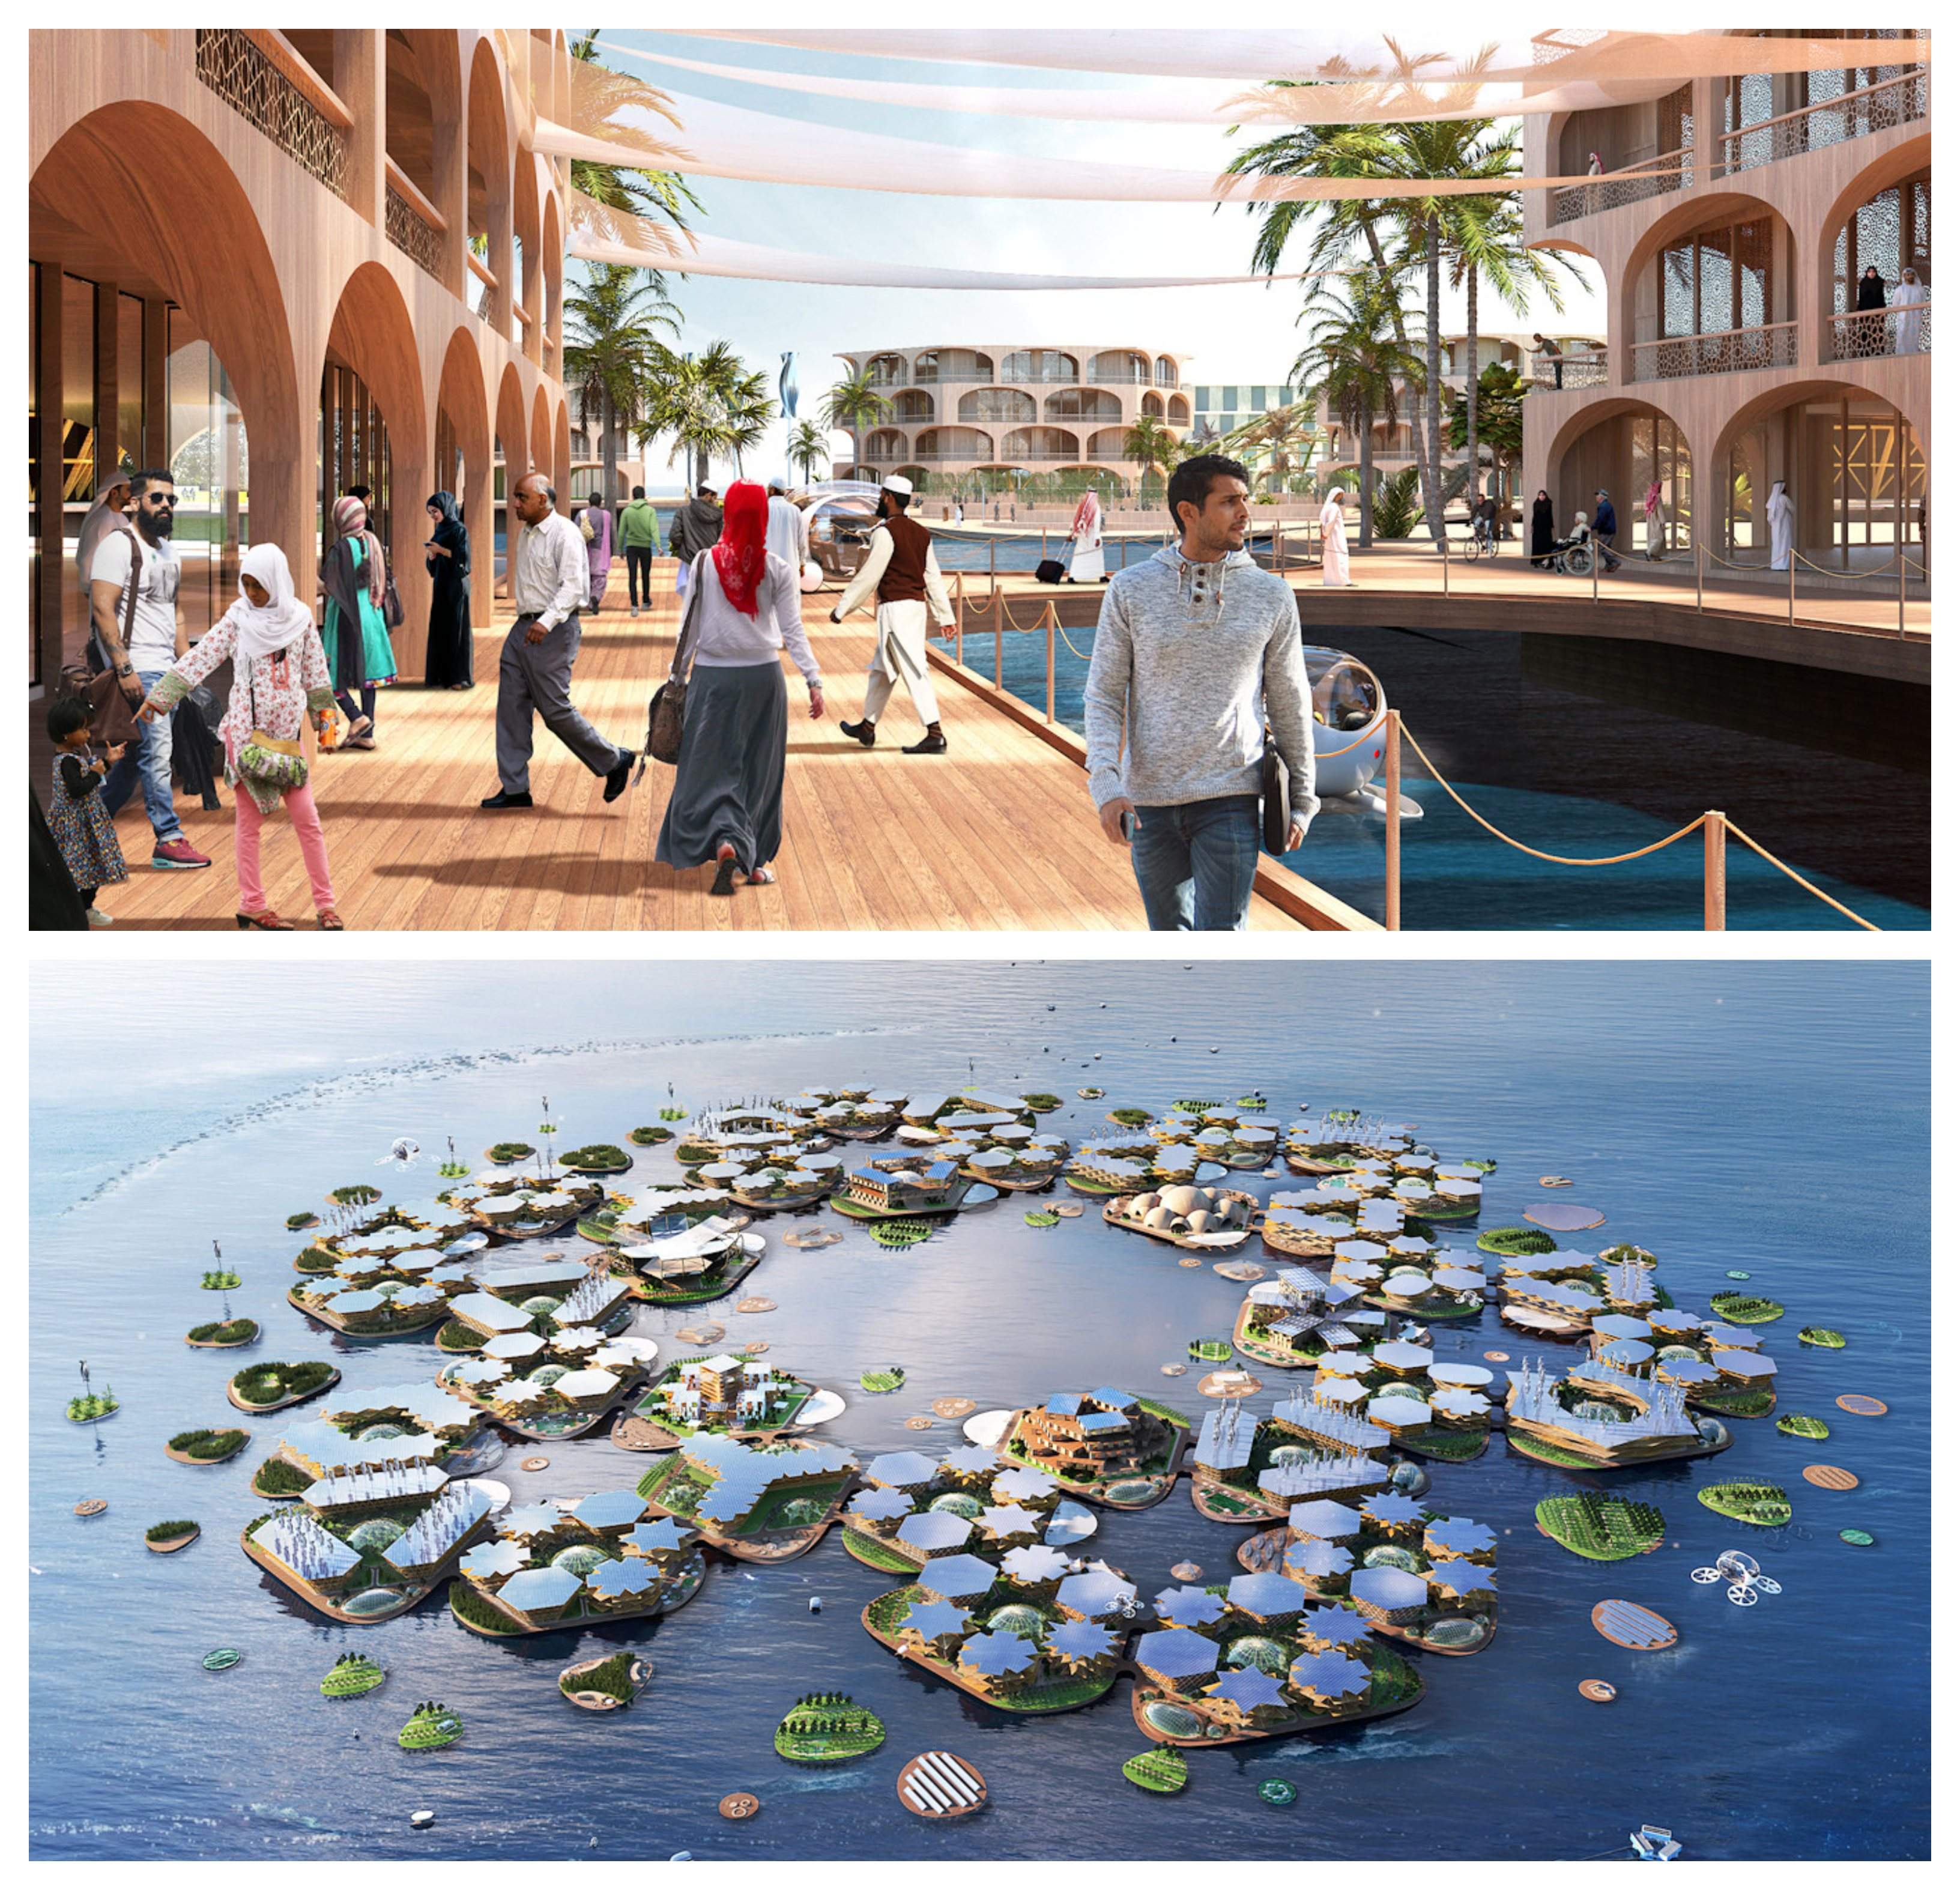 Hexagon shaped: Ingles said Oceanix City is designed as a human-made ecosystem channeling circular flows of energy, water, food, and waste.